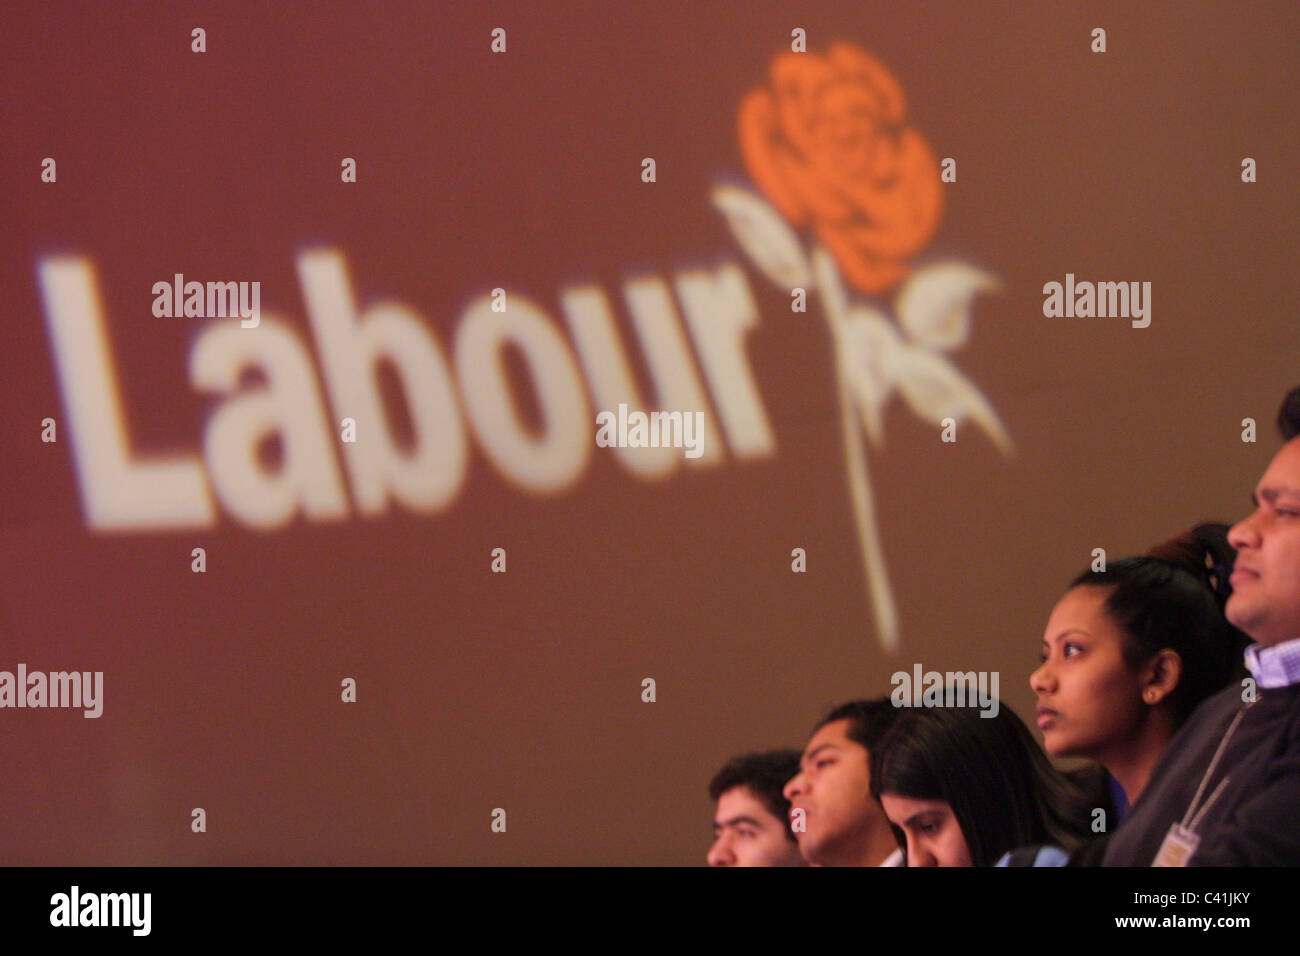 Labour Party conference, in Glasgow, Scotland, 16th February 2003. - Stock Image